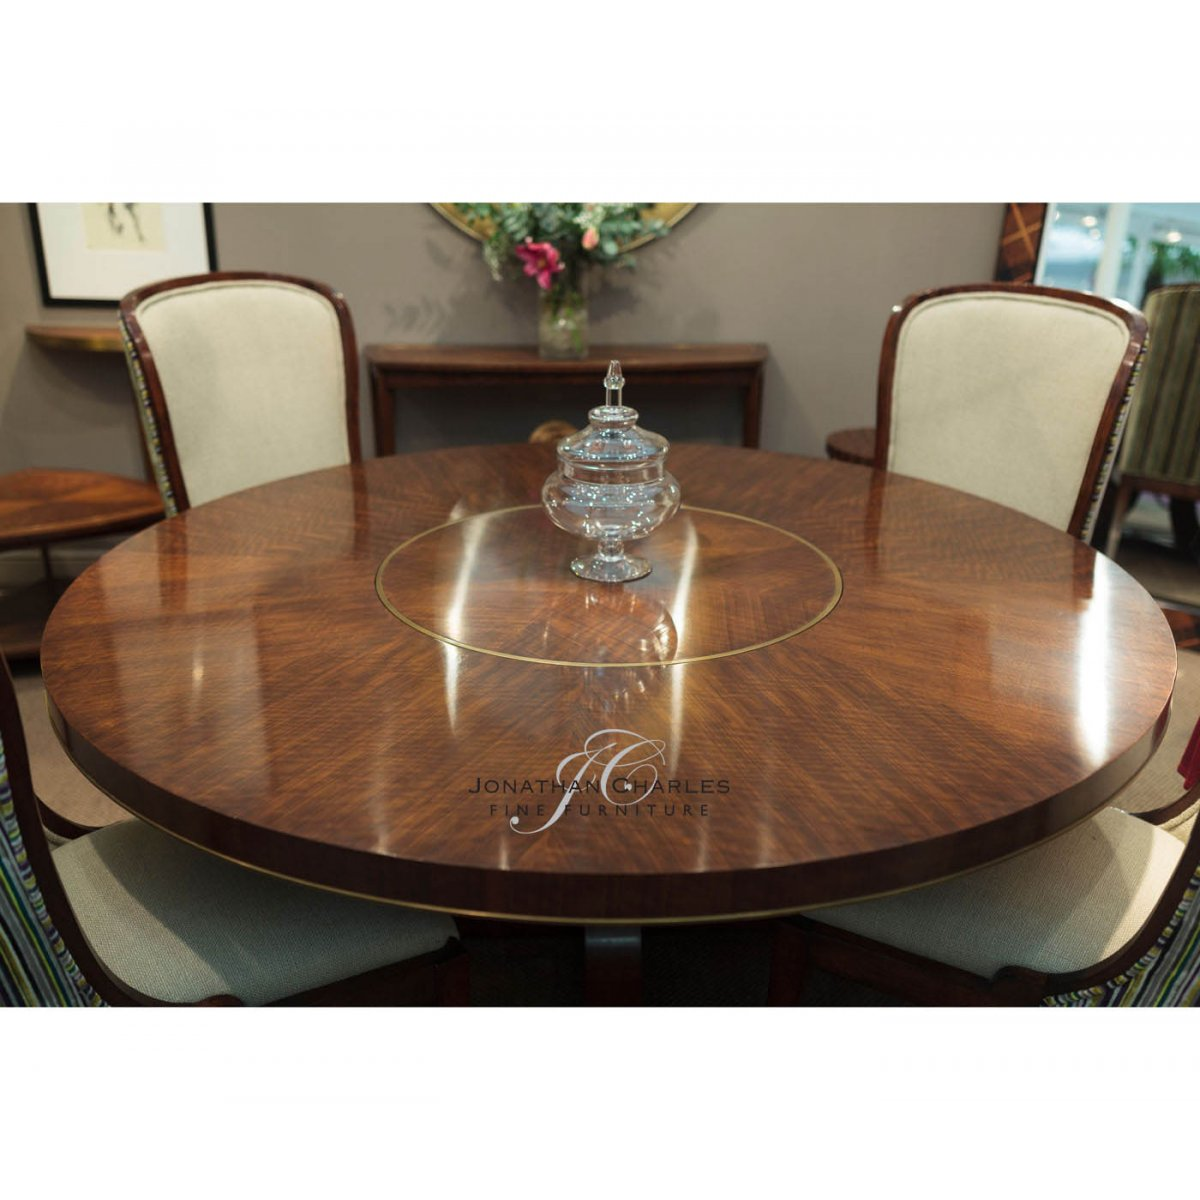 Jonathan Charles Furniture 8 Seater Round Dining Table With Lazy Susan Hyedua